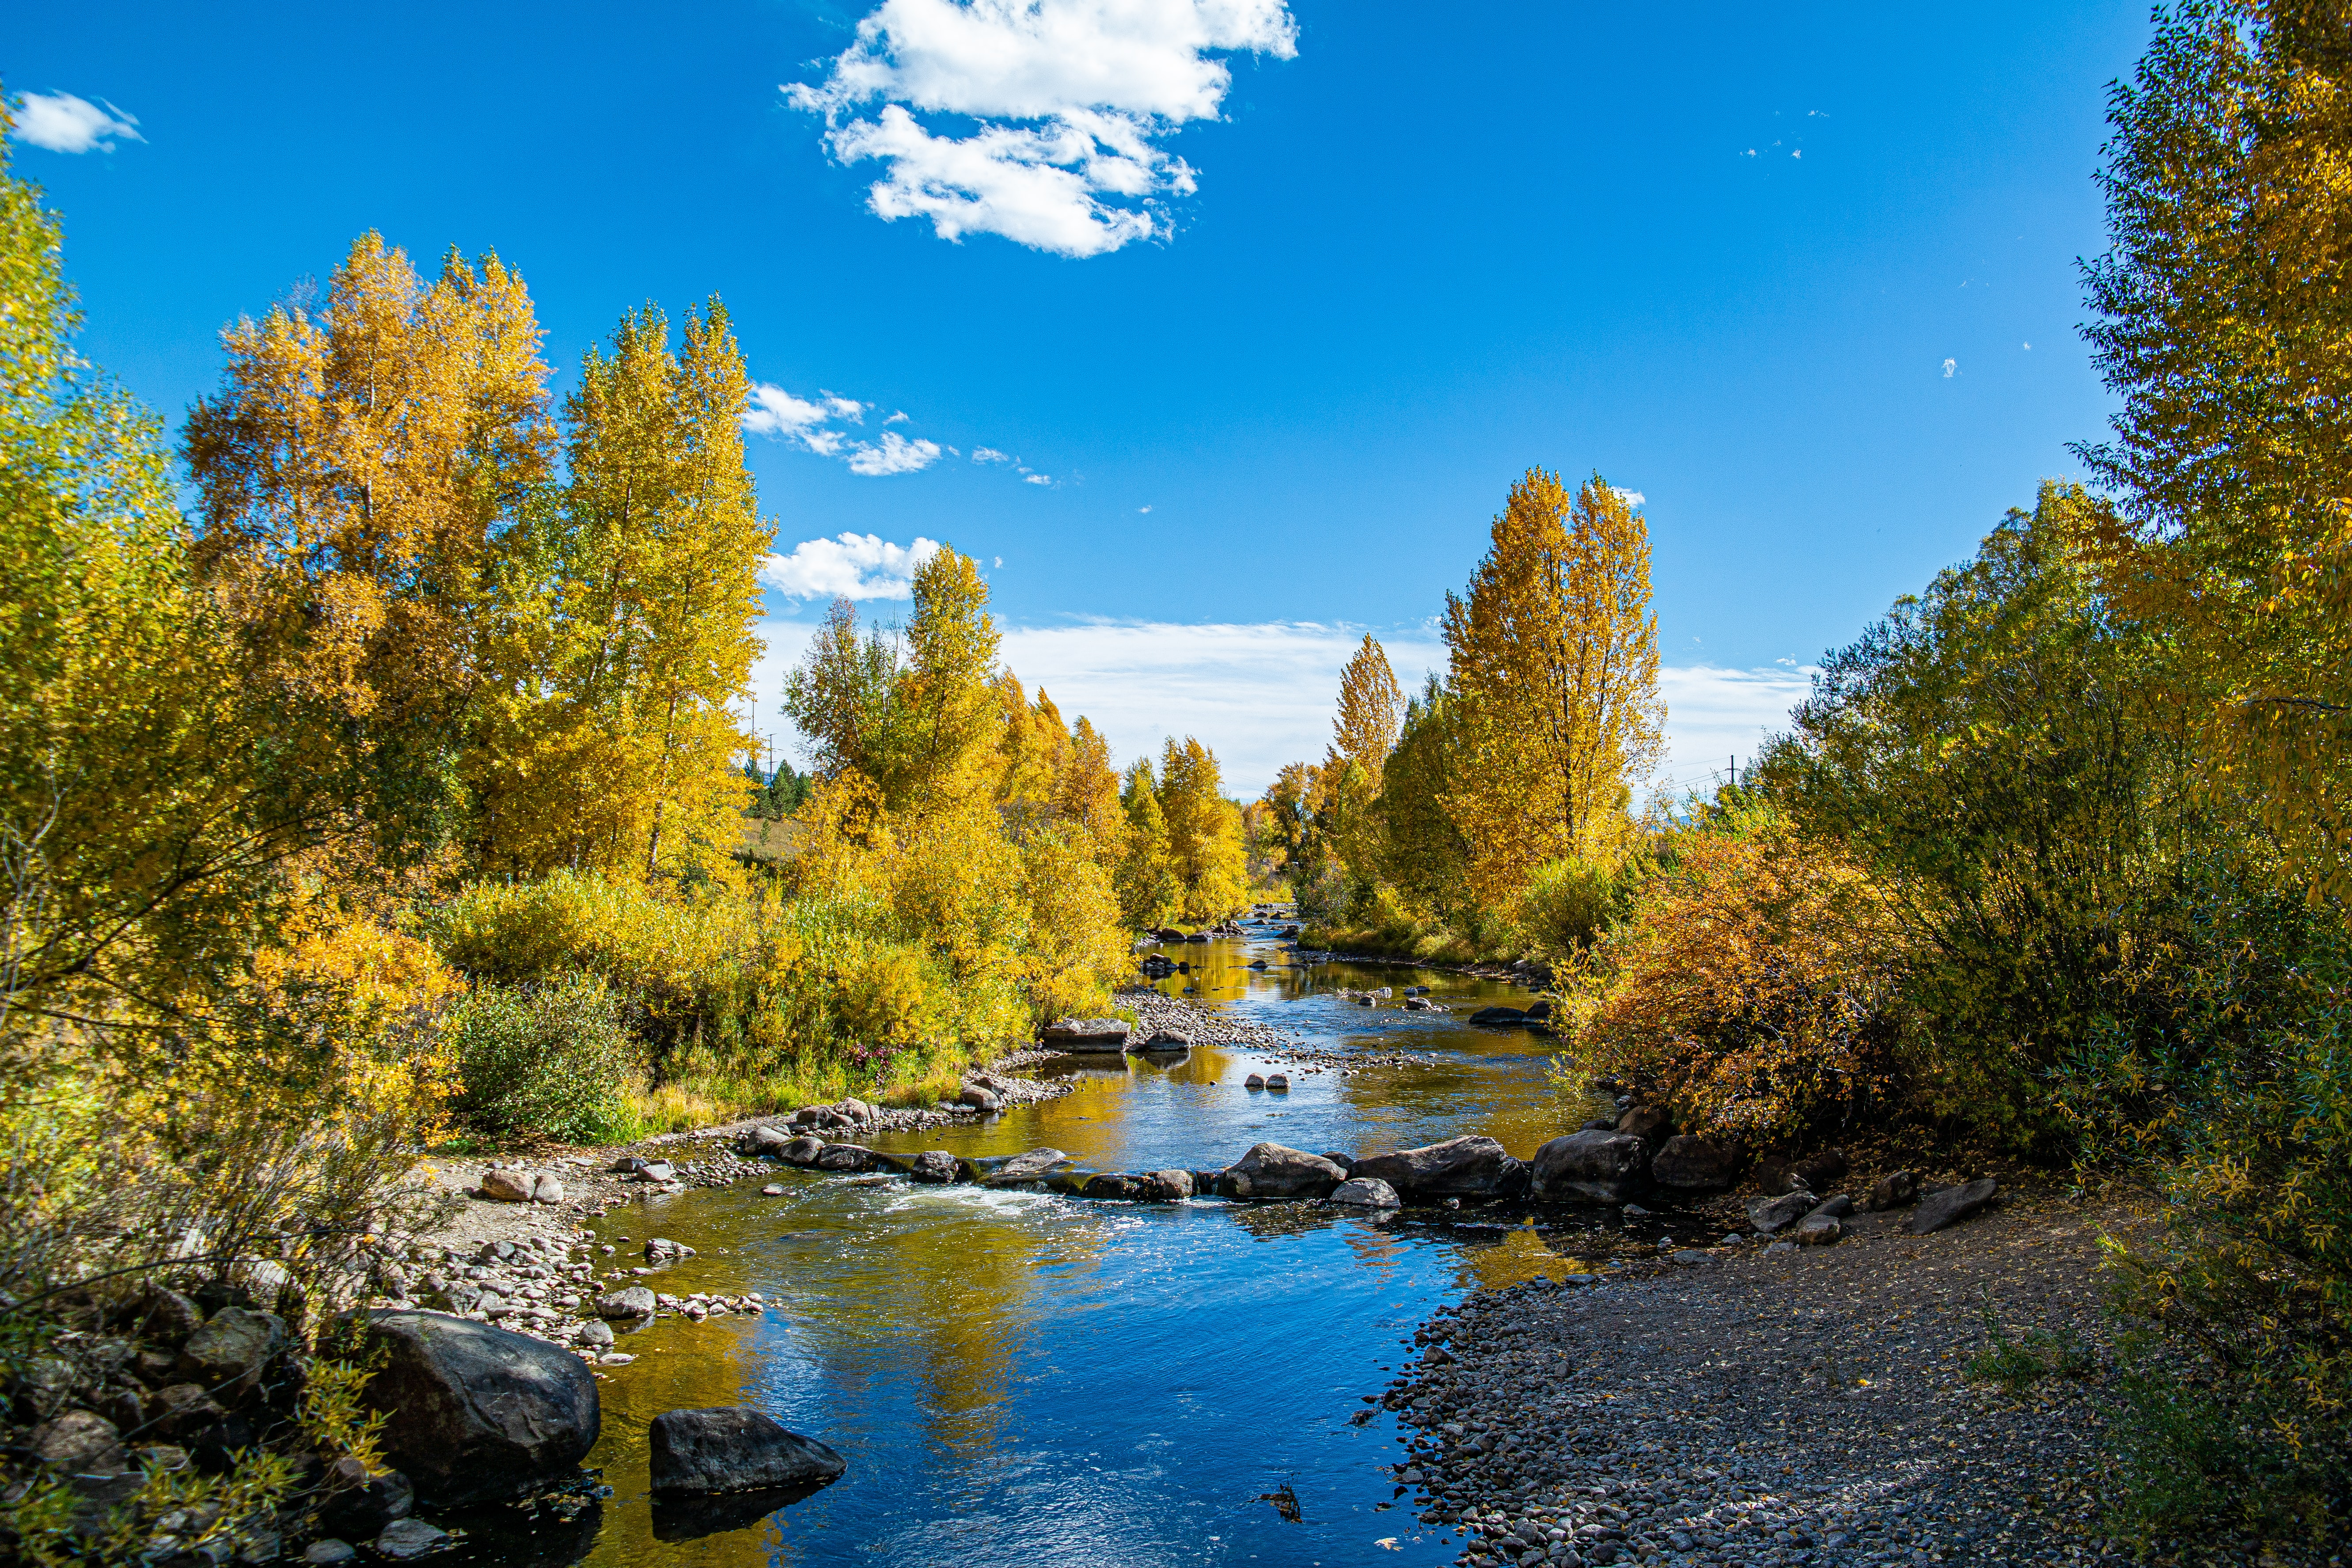 15 Things to do in Steamboat Springs, Colorado